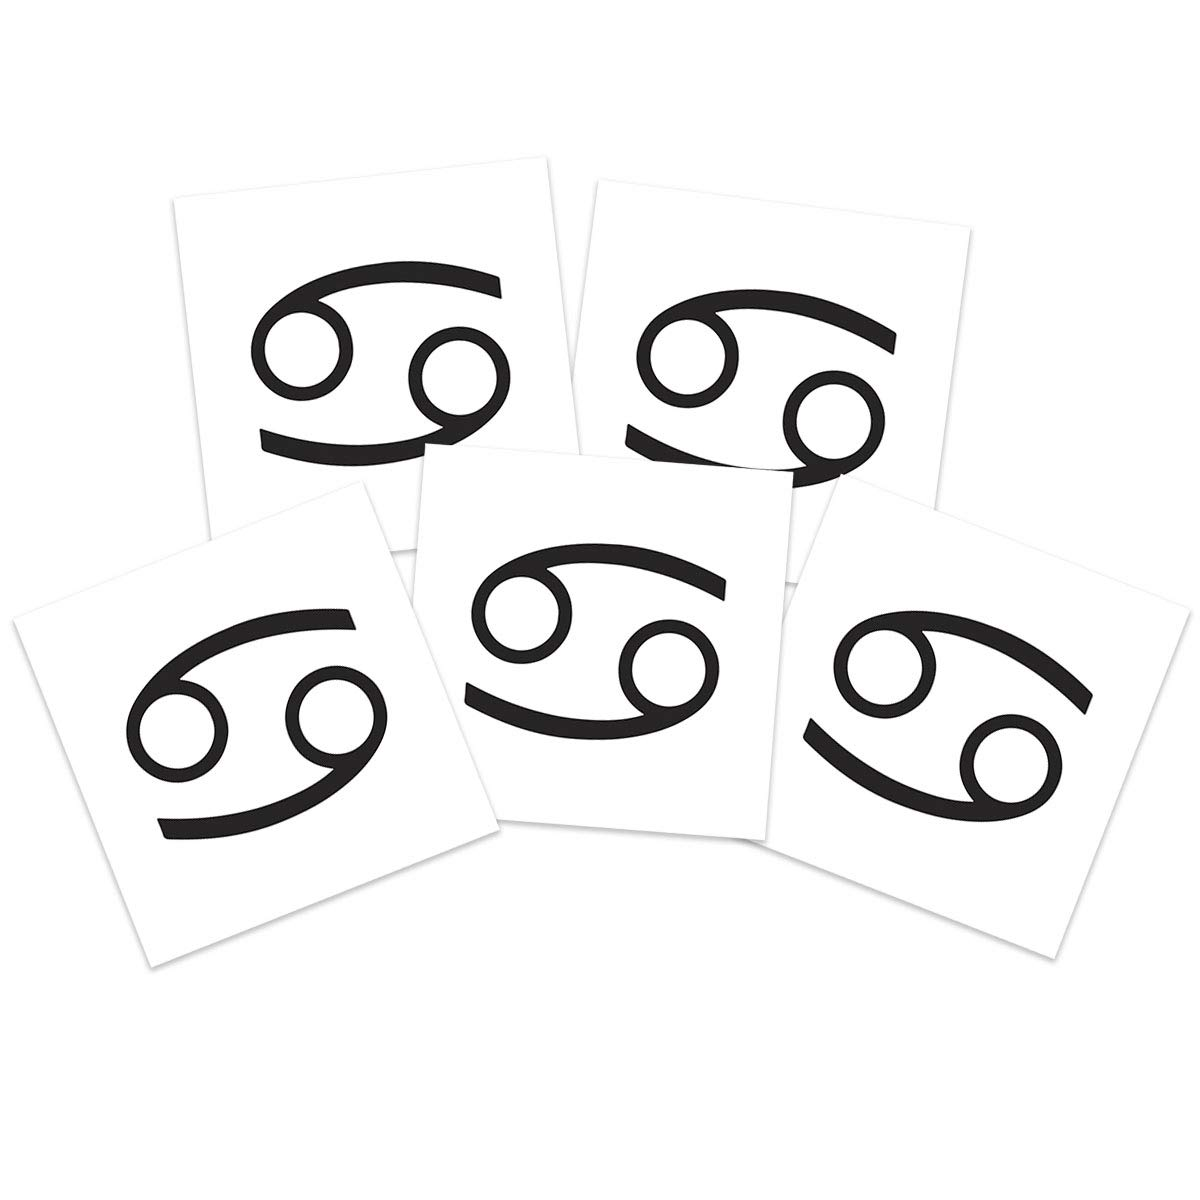 Cancer Zodiac Temporary Tattoos (5-Pack) | Skin Safe | MADE IN THE USA| Removable